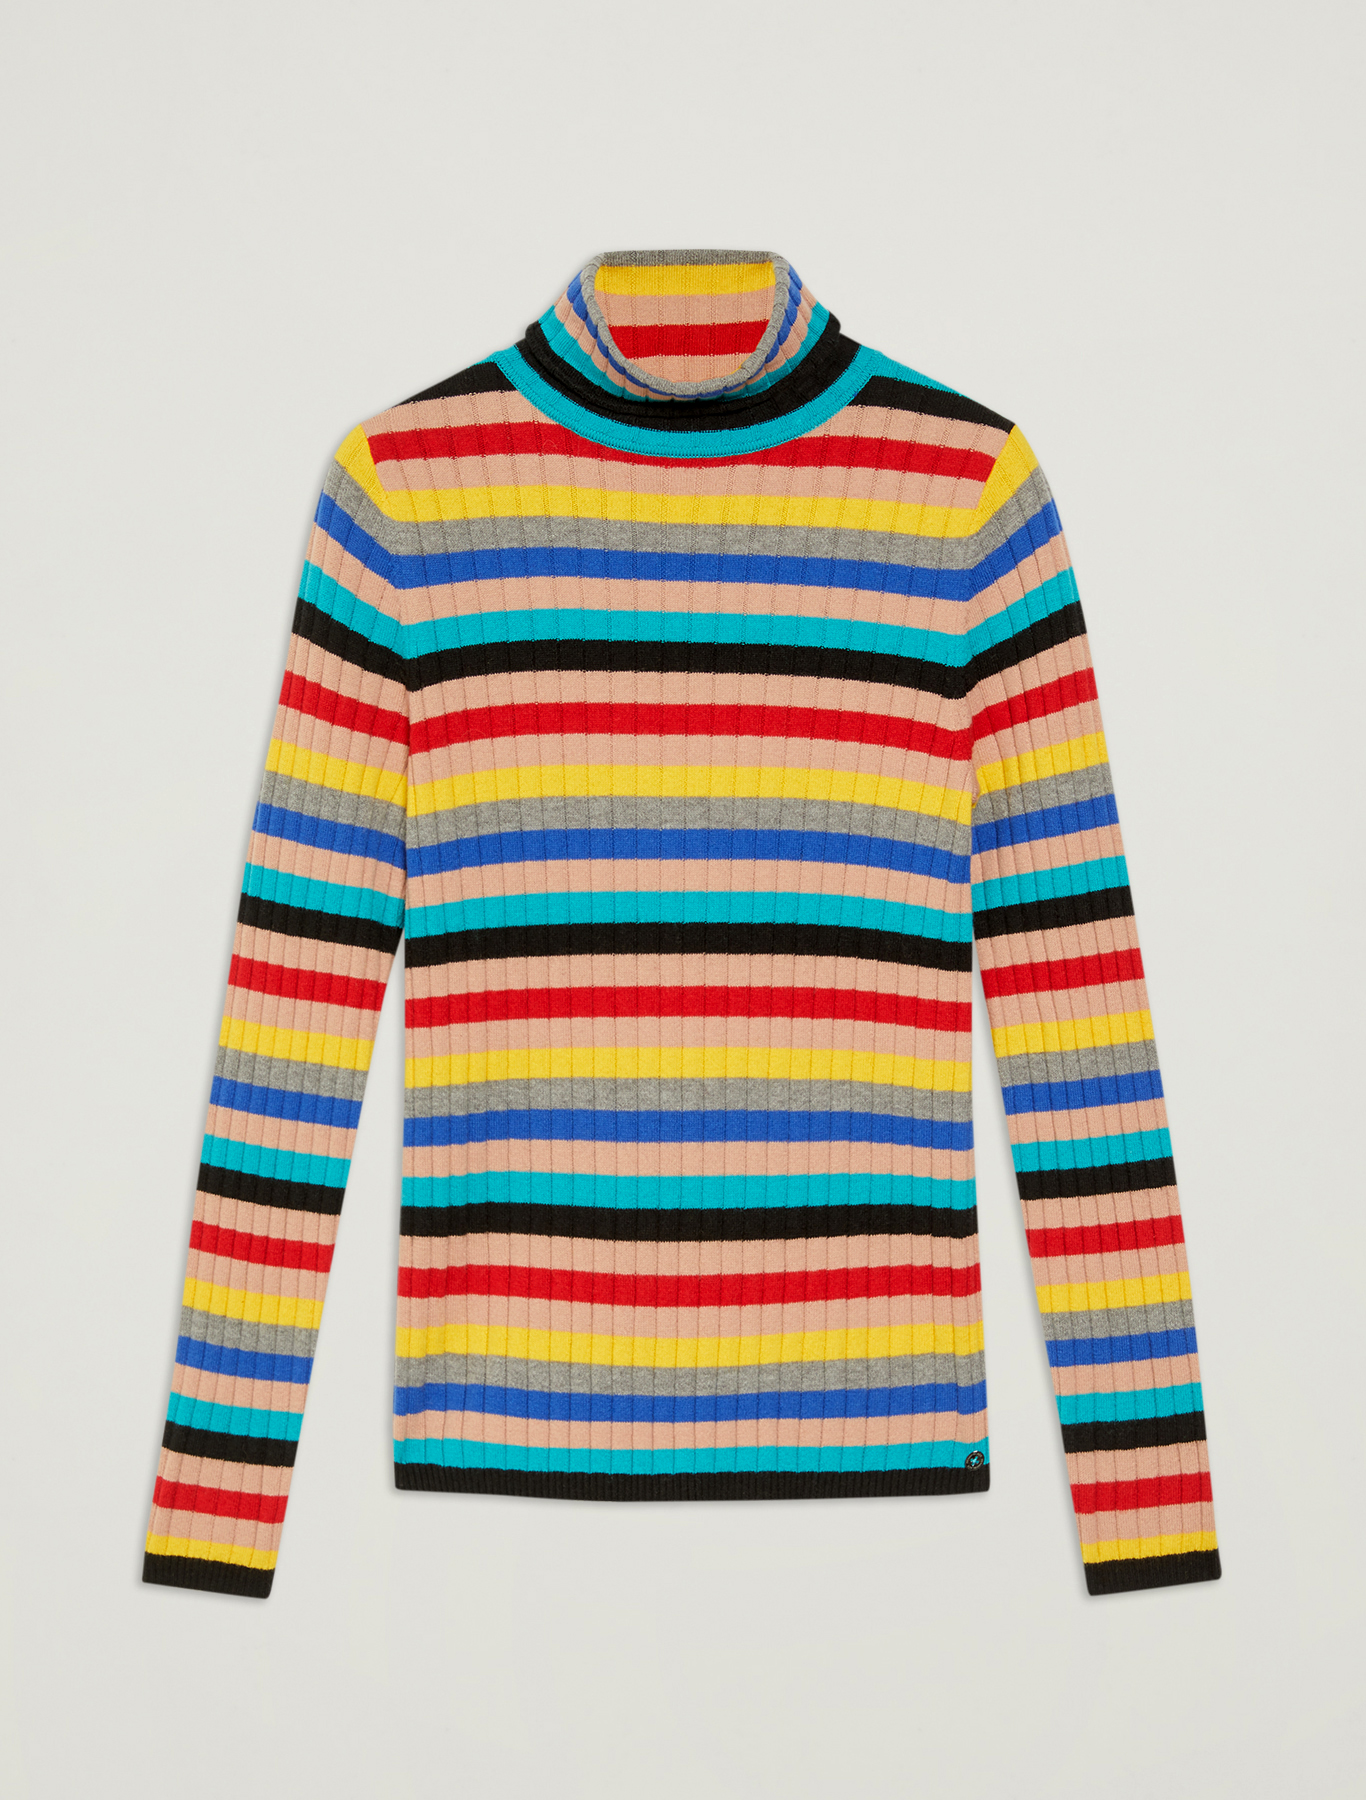 Striped multicolour turtleneck - multi coloured - pennyblack